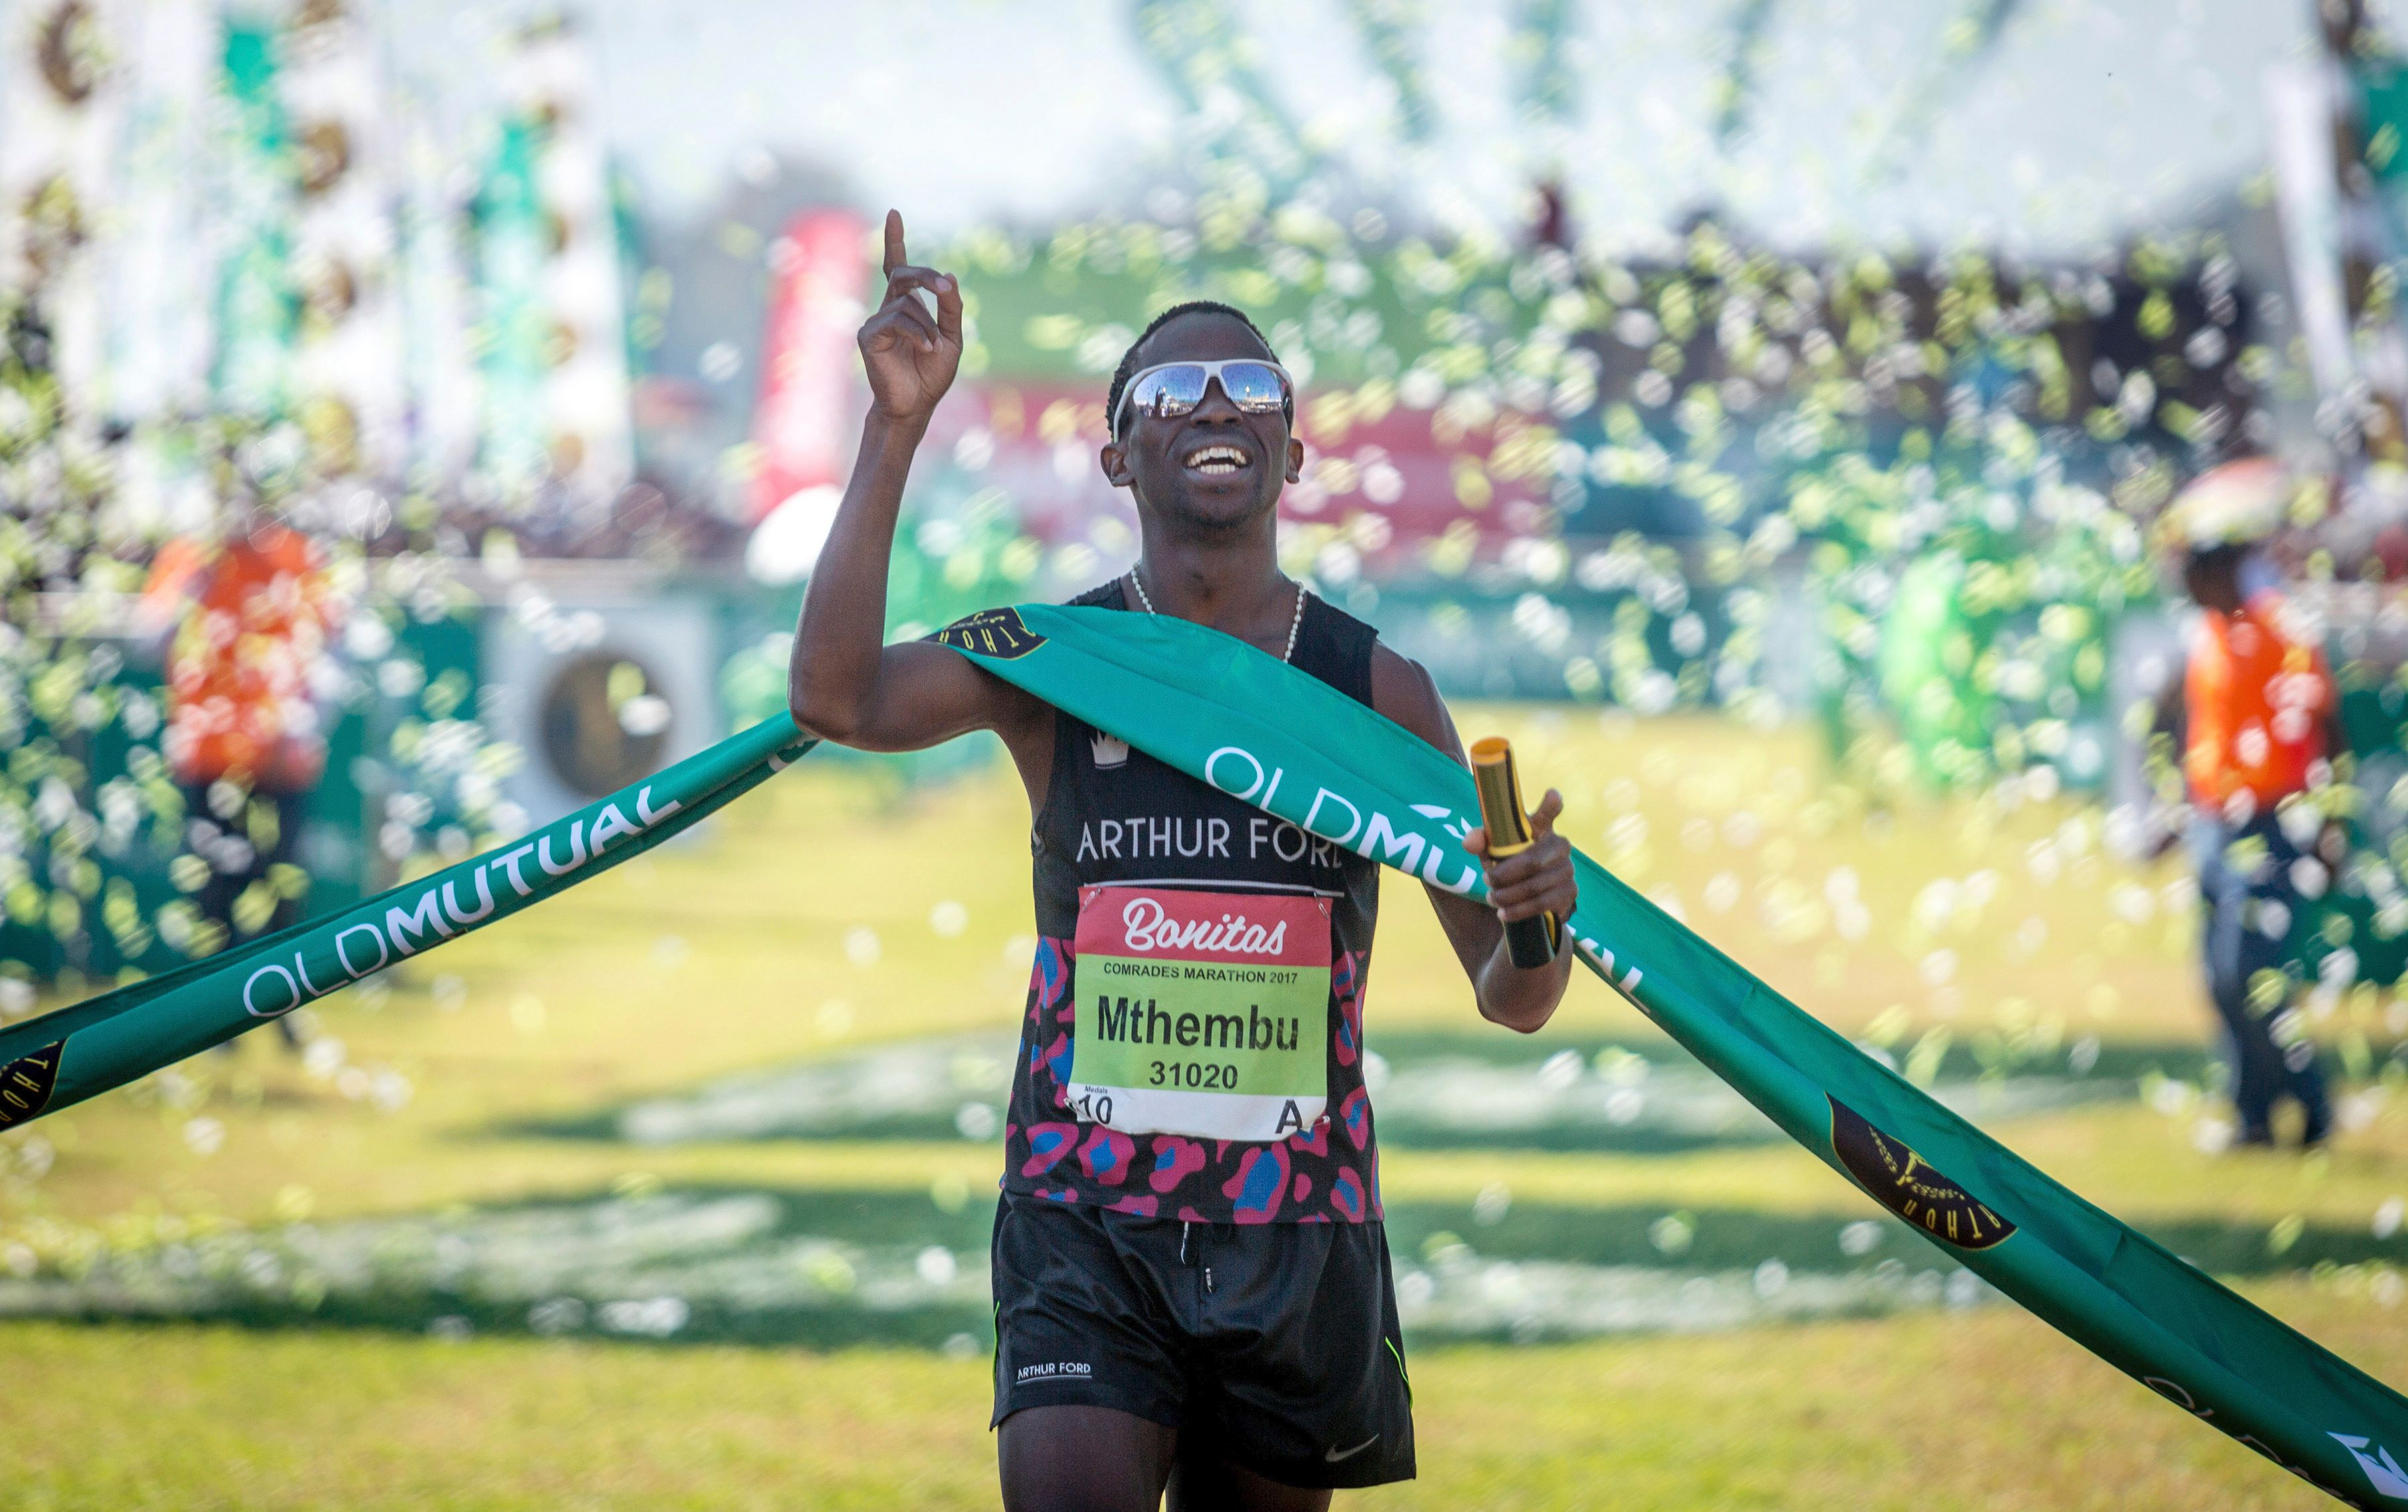 A running guide to: The Comrades Marathon.